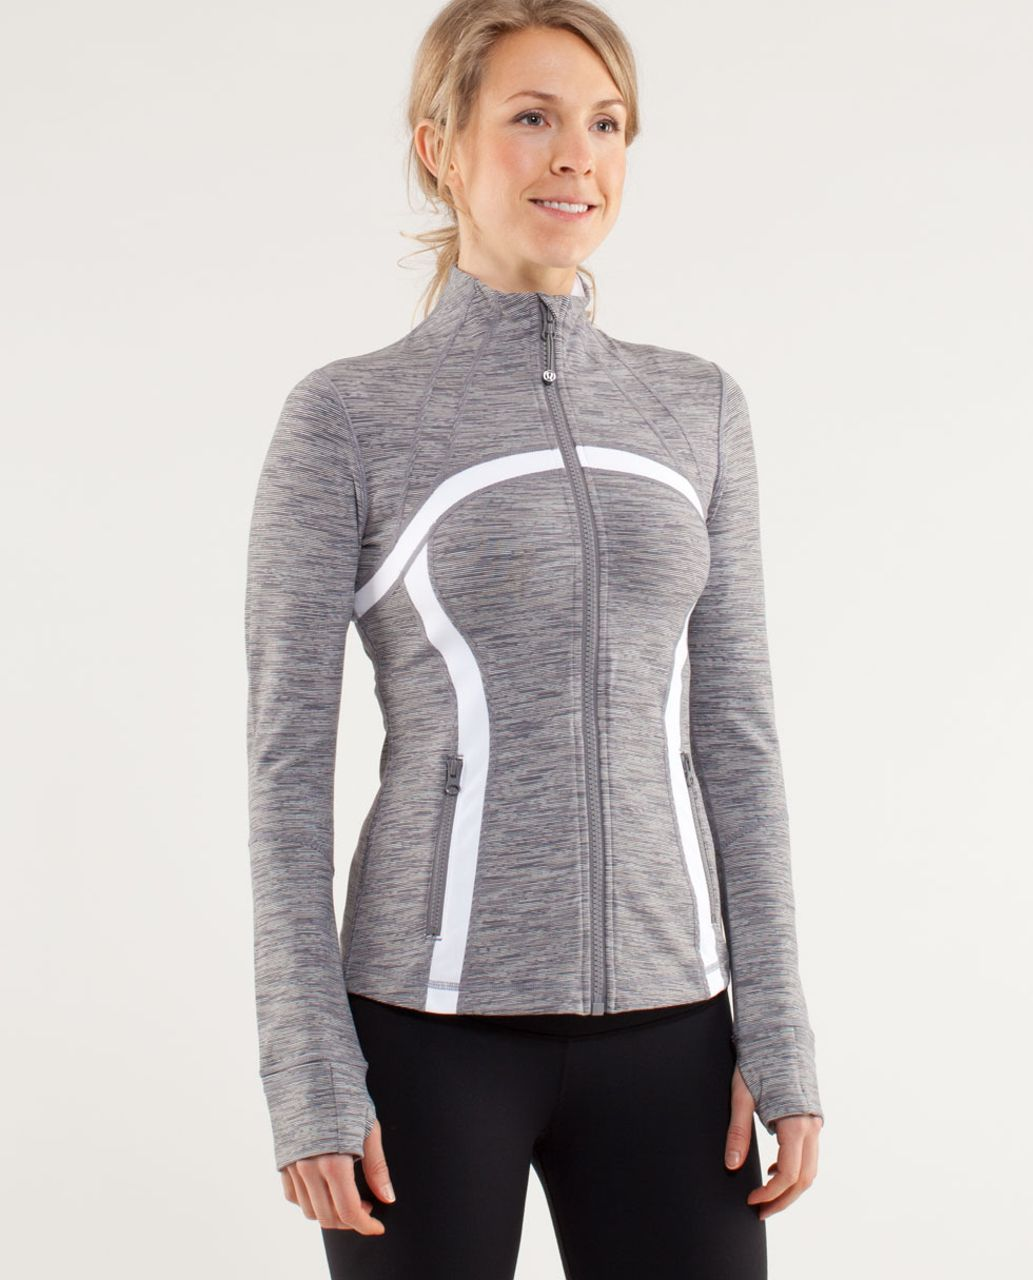 Lululemon Define Jacket - Wee Are From Space Coal Fossil /  White